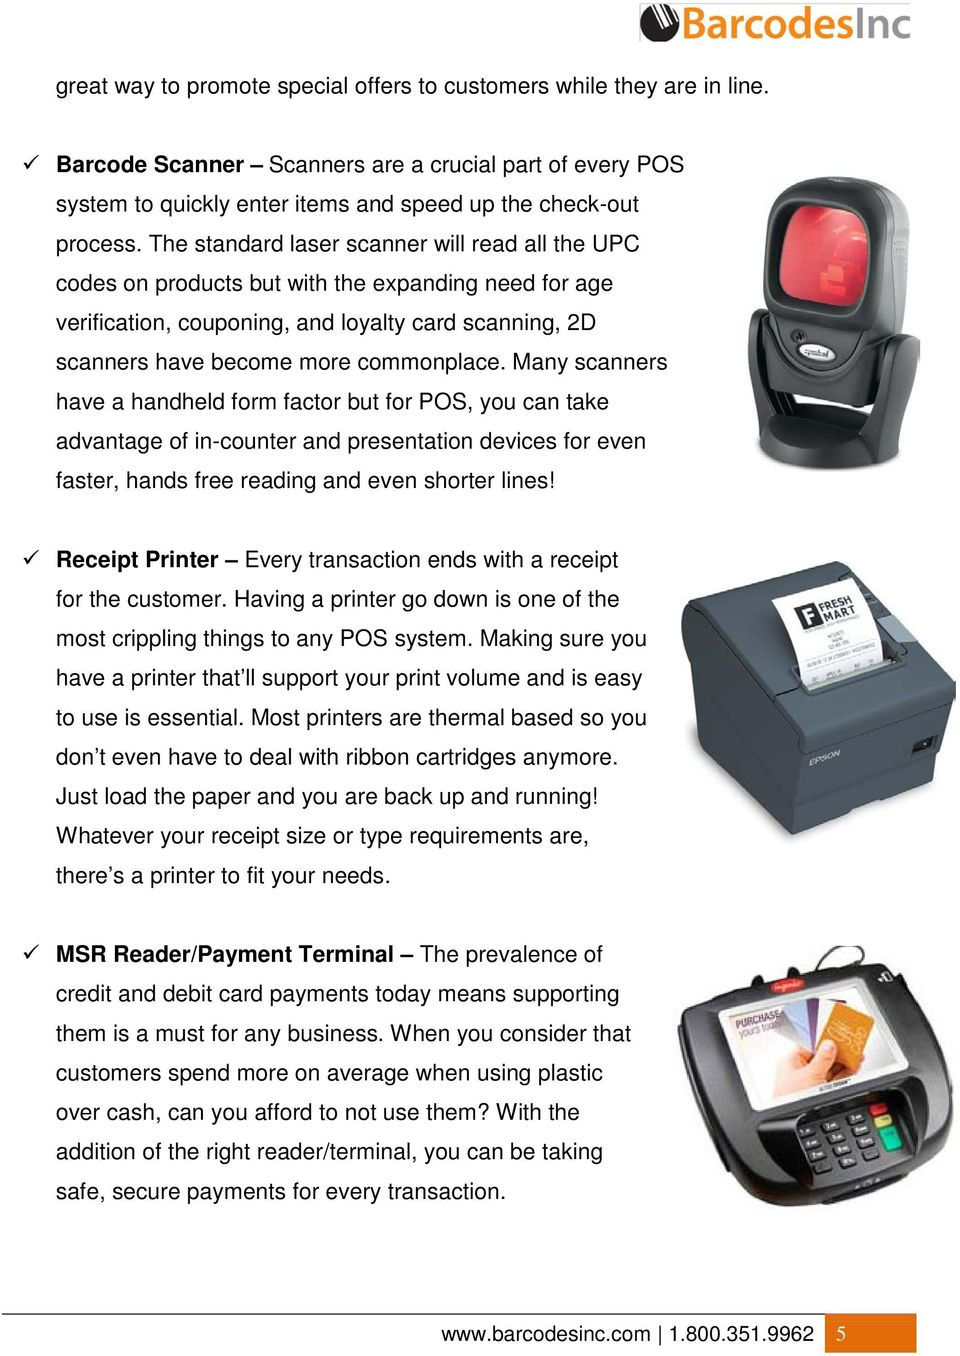 Many scanners have a handheld form factor but for POS, you can take advantage of in-counter and presentation devices for even faster, hands free reading and even shorter lines!